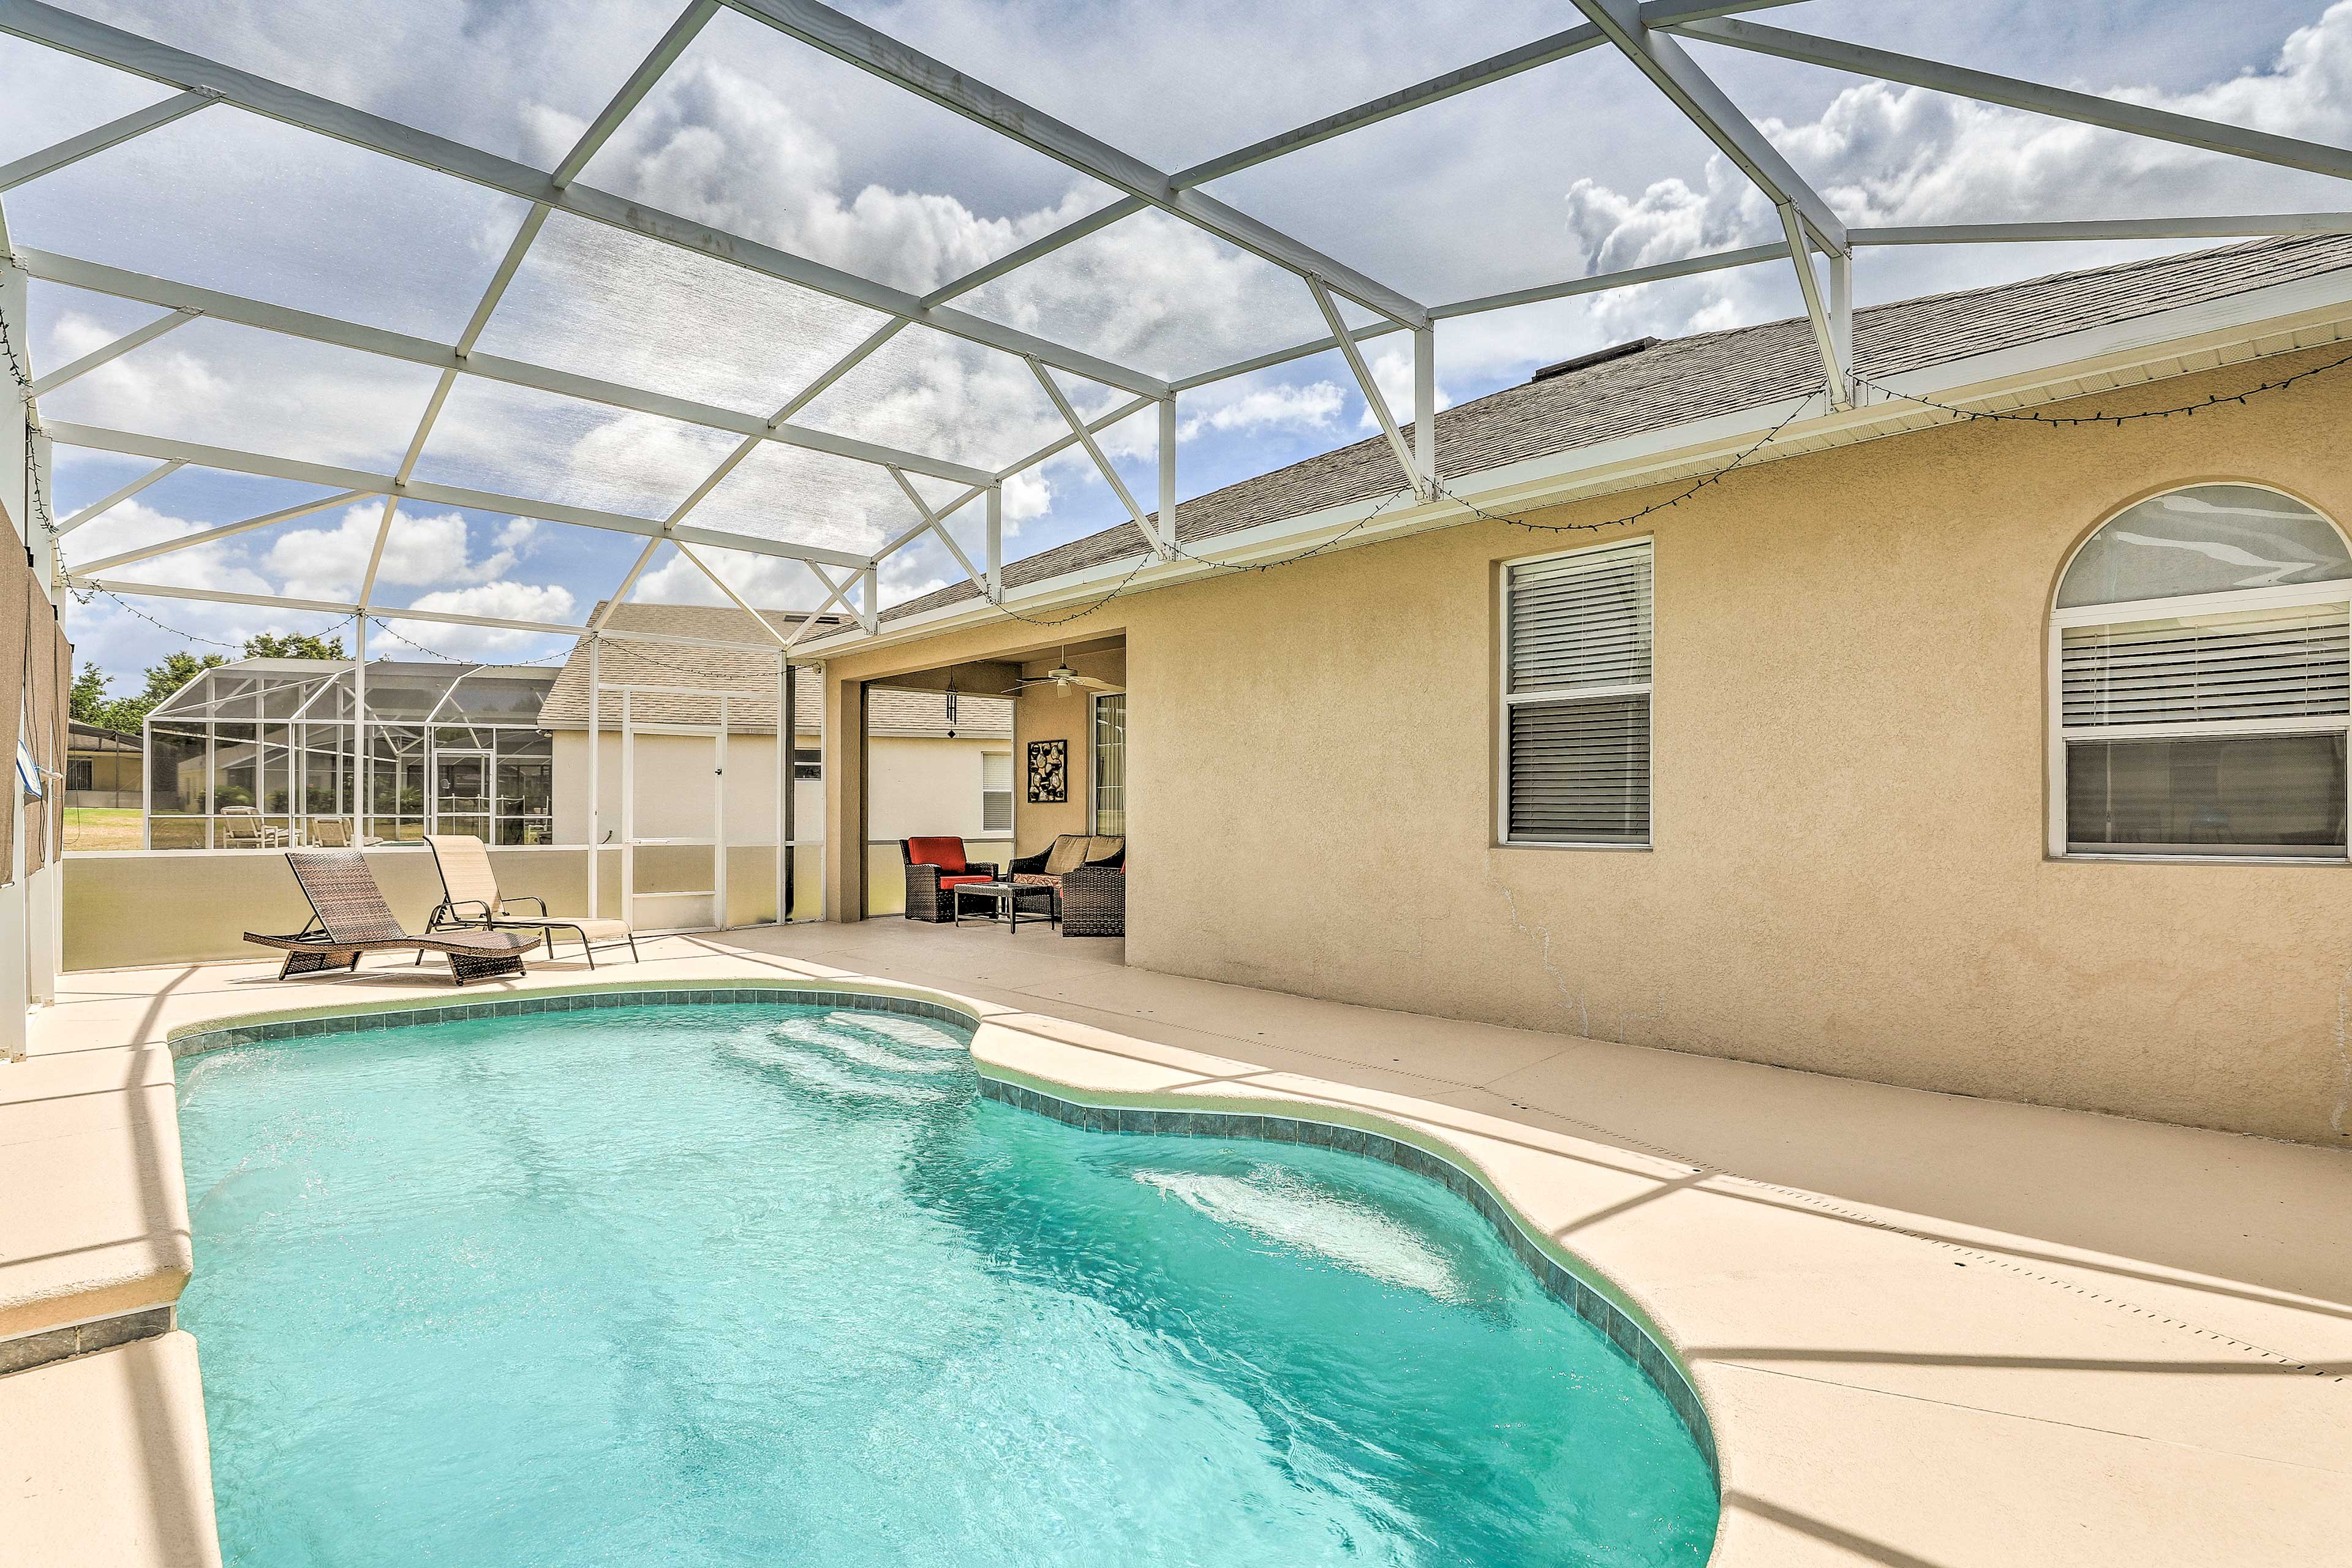 This Davenport, Florida home features a private pool!